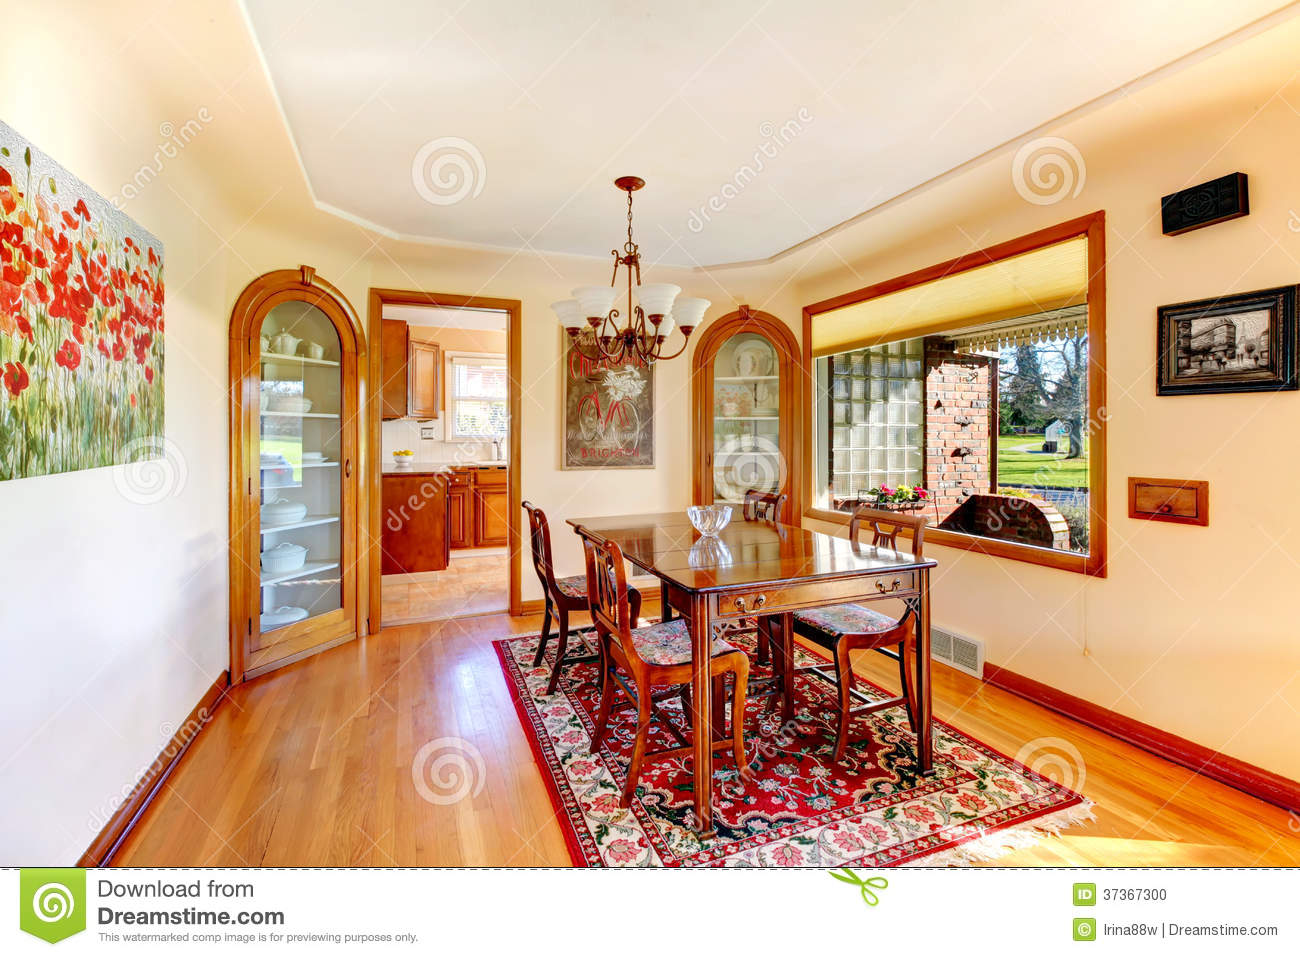 Elegant Dining Room With Rustic Table Set Stock Photo Image Of Real Idea 37367300